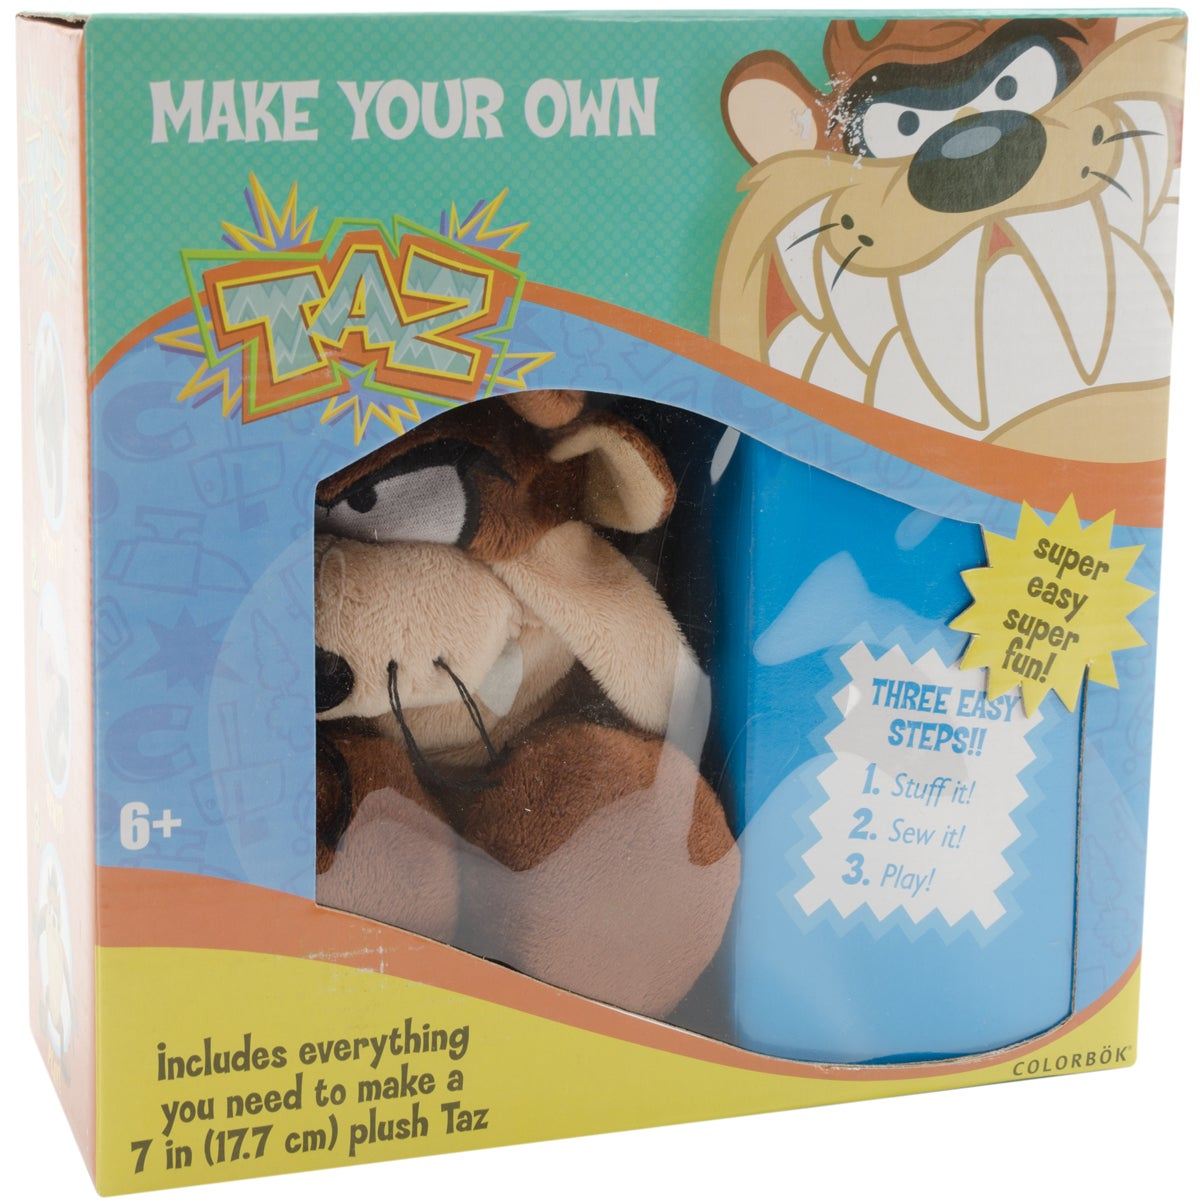 Make Your Own Taz Kit